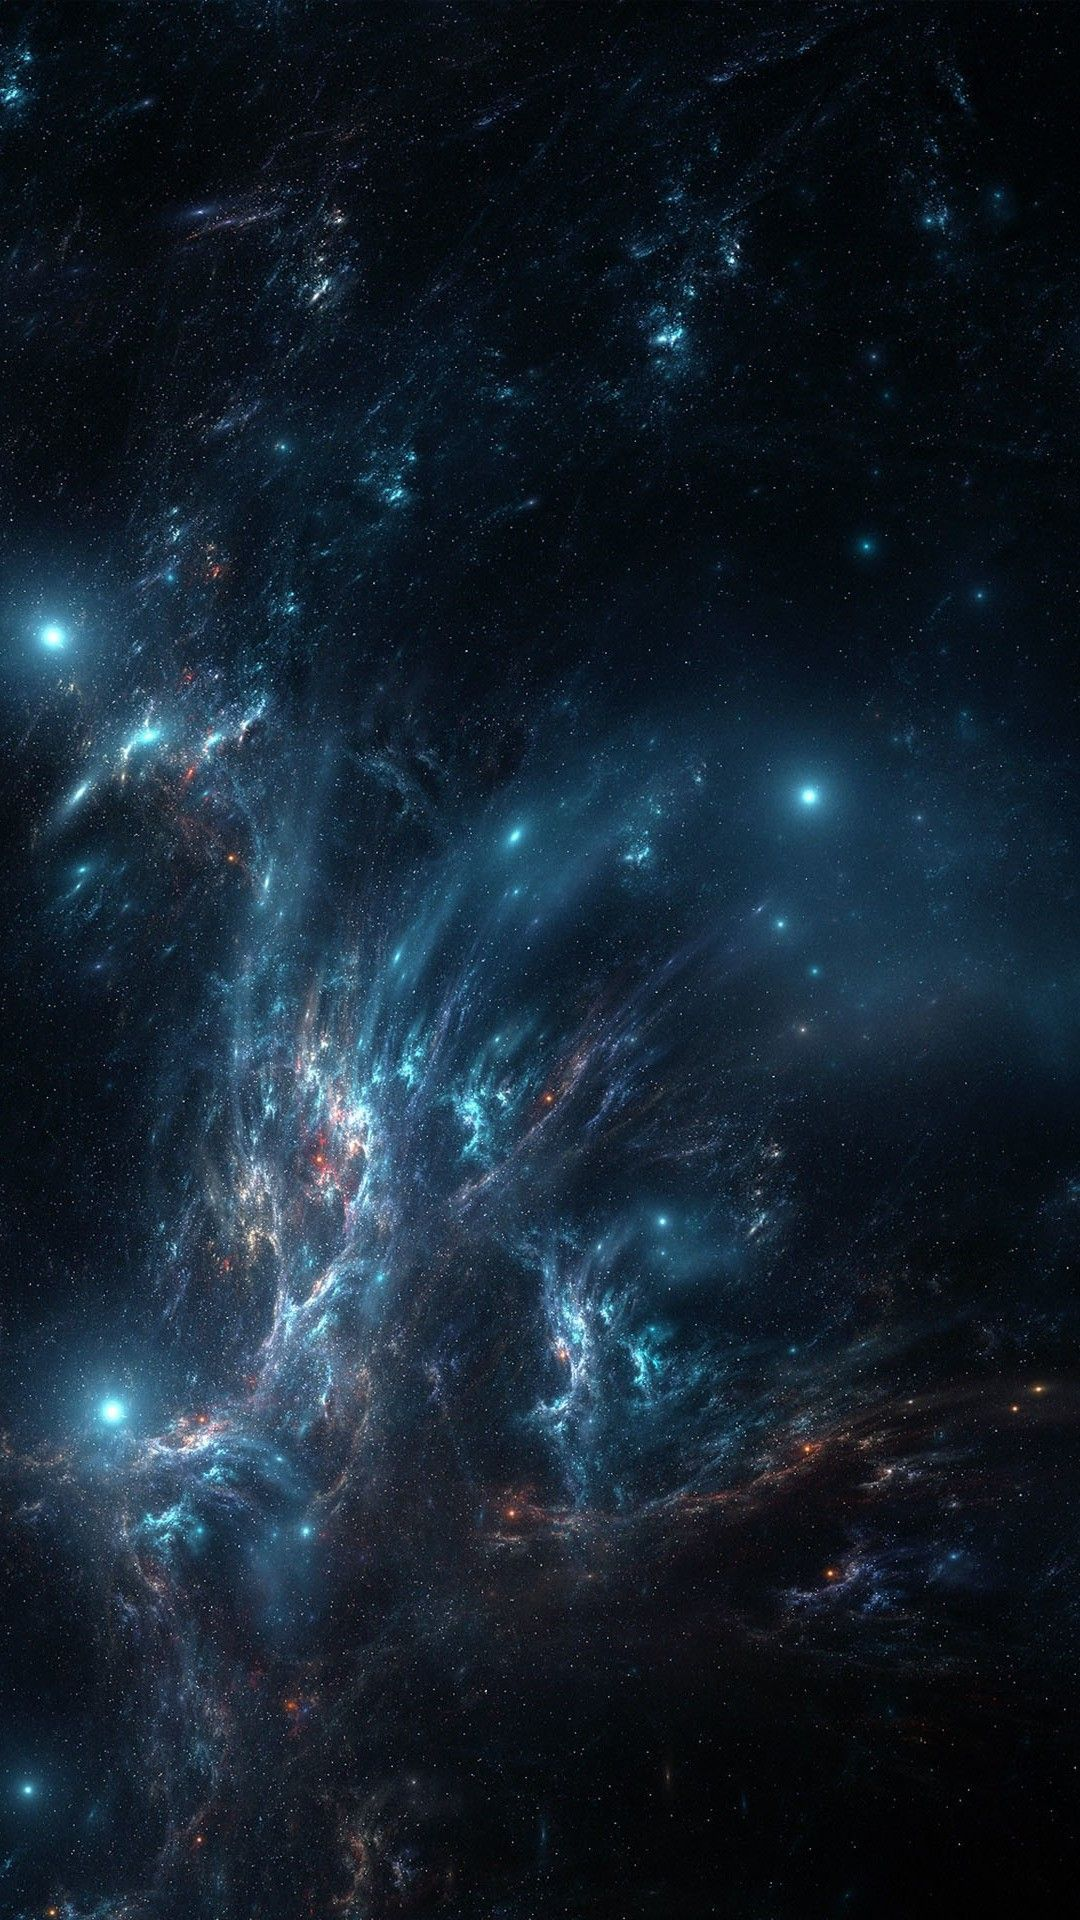 Download This Awesome Wallpaper Wallpaper Cave Galaxy Wallpaper Iphone Space Iphone Wallpaper Galaxy Wallpaper